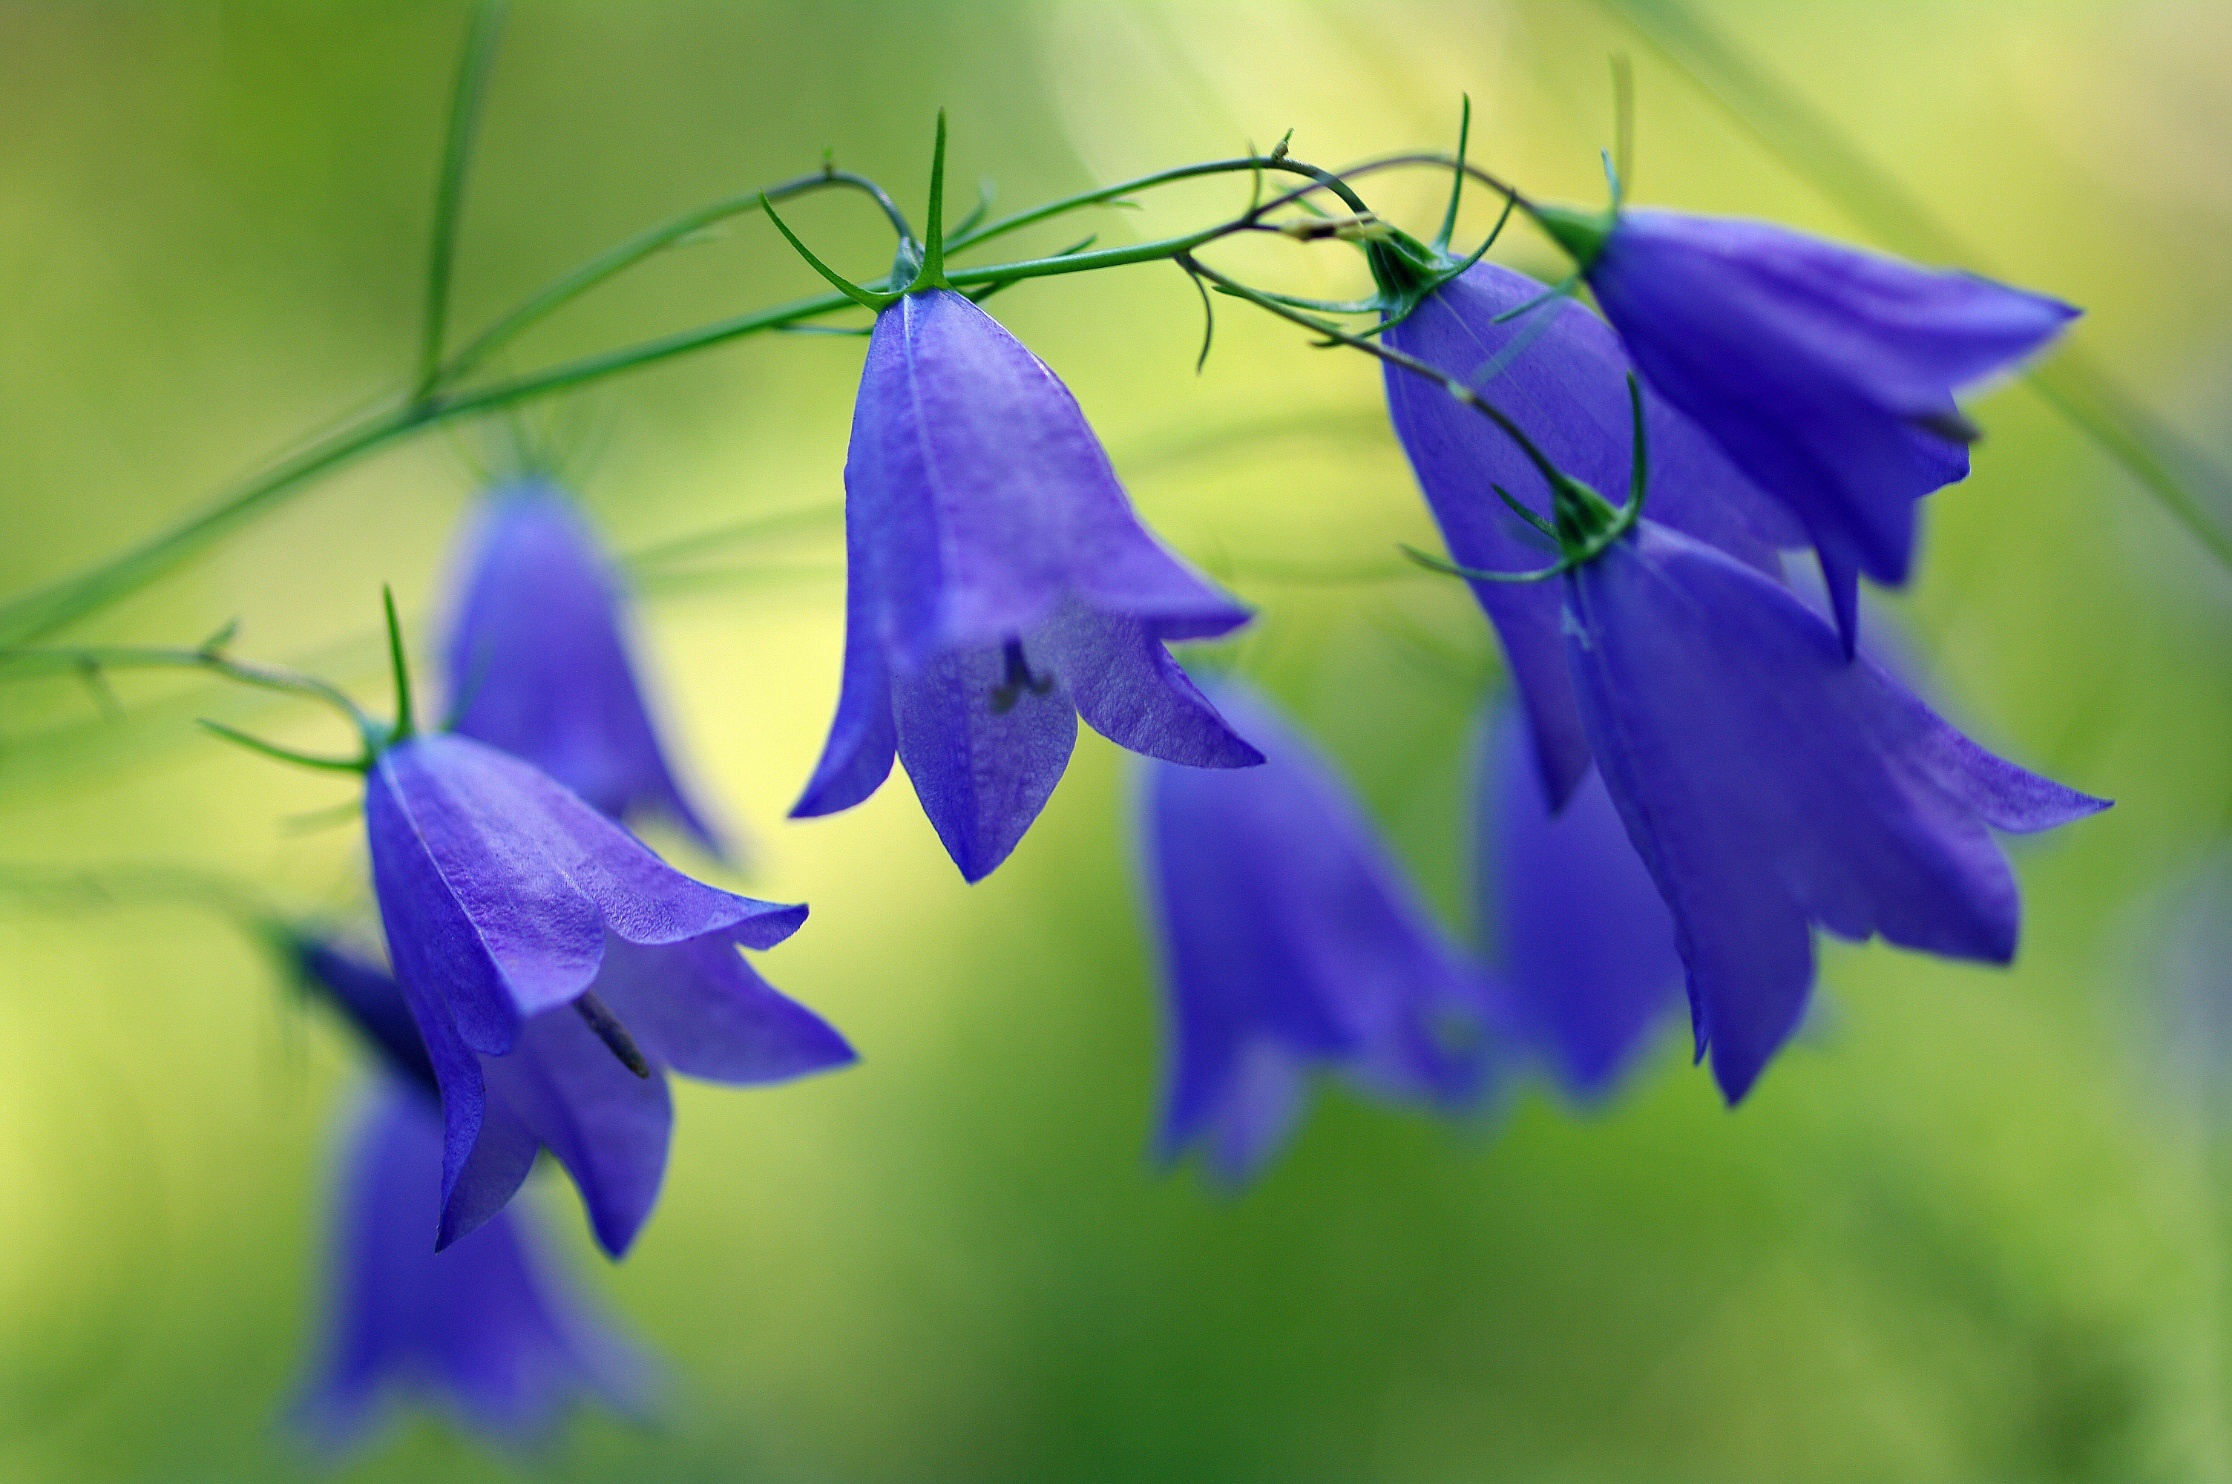 Blue Flower Bluebell Flower Nature 2232x1484